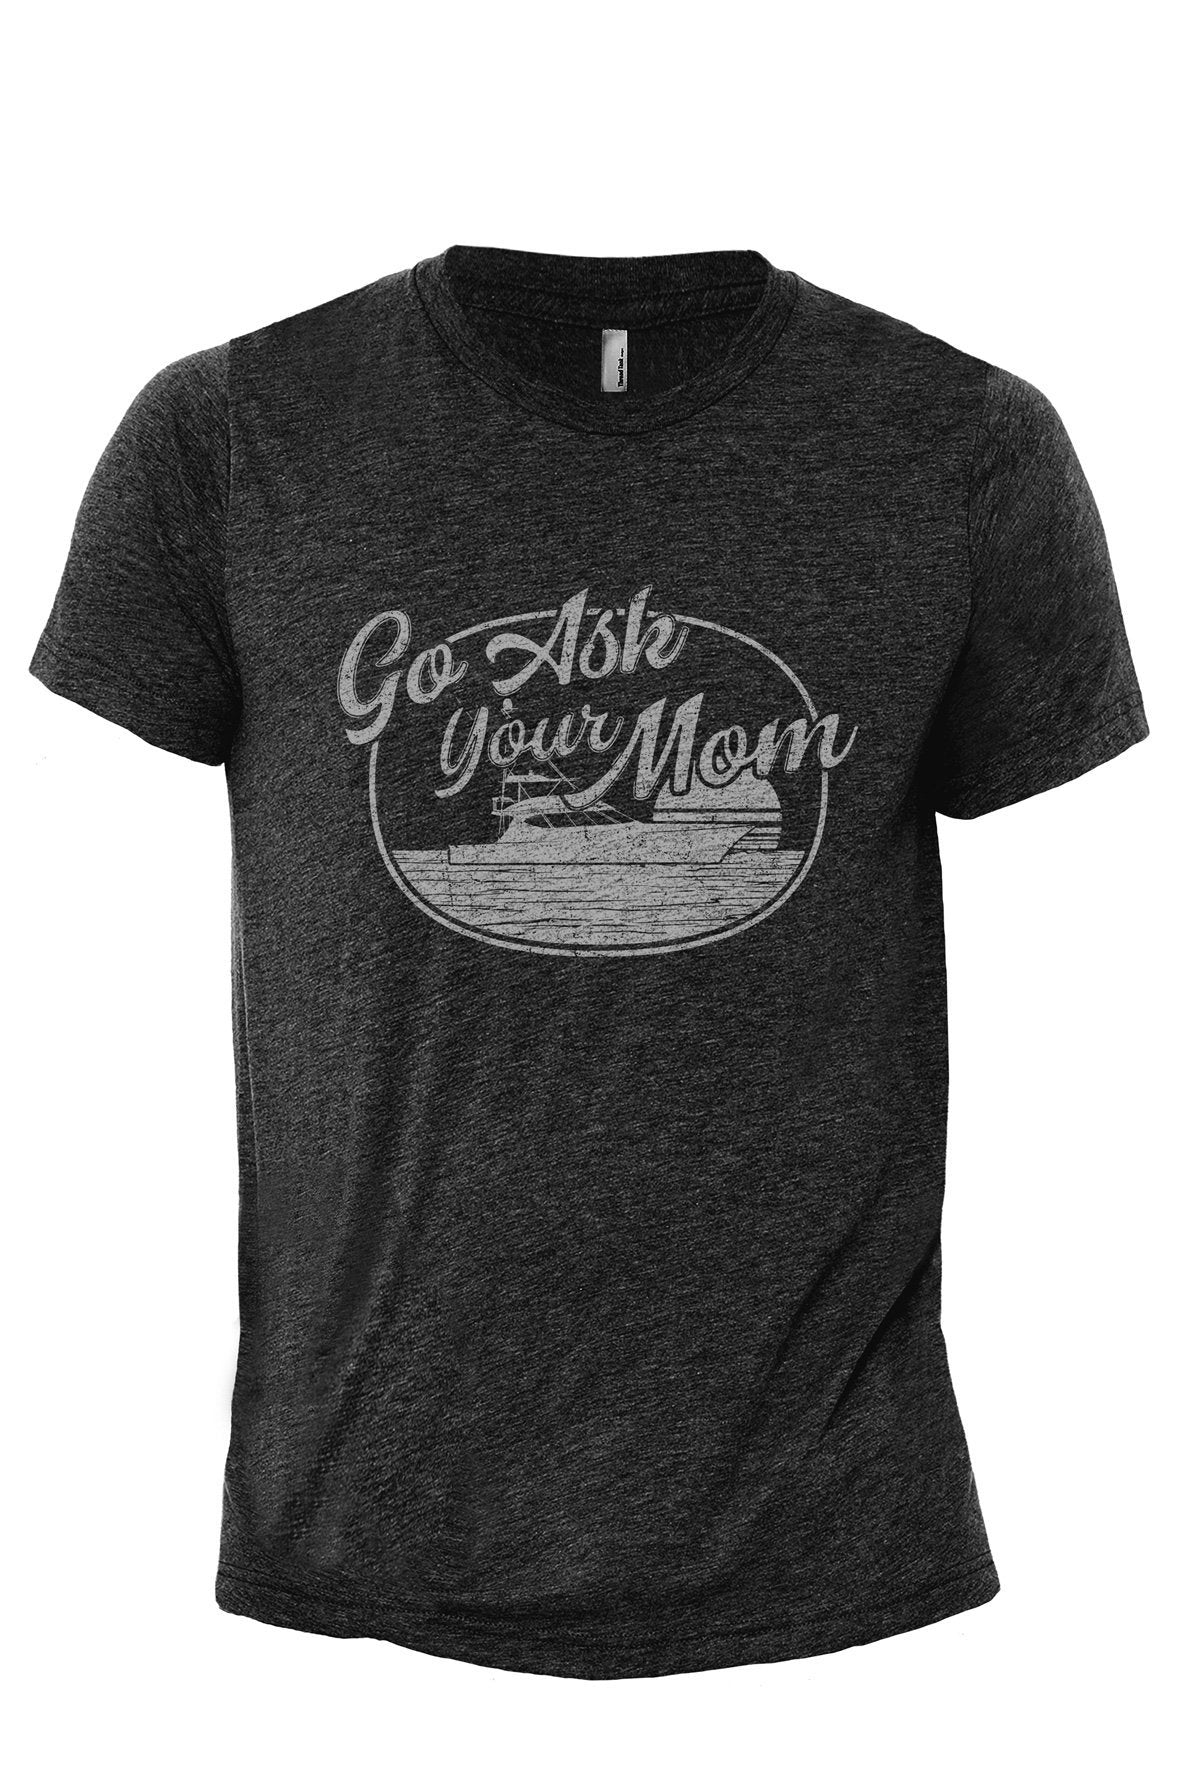 Go Ask Your Mom Heather Grey Printed Graphic Men's Crew T-Shirt Tee